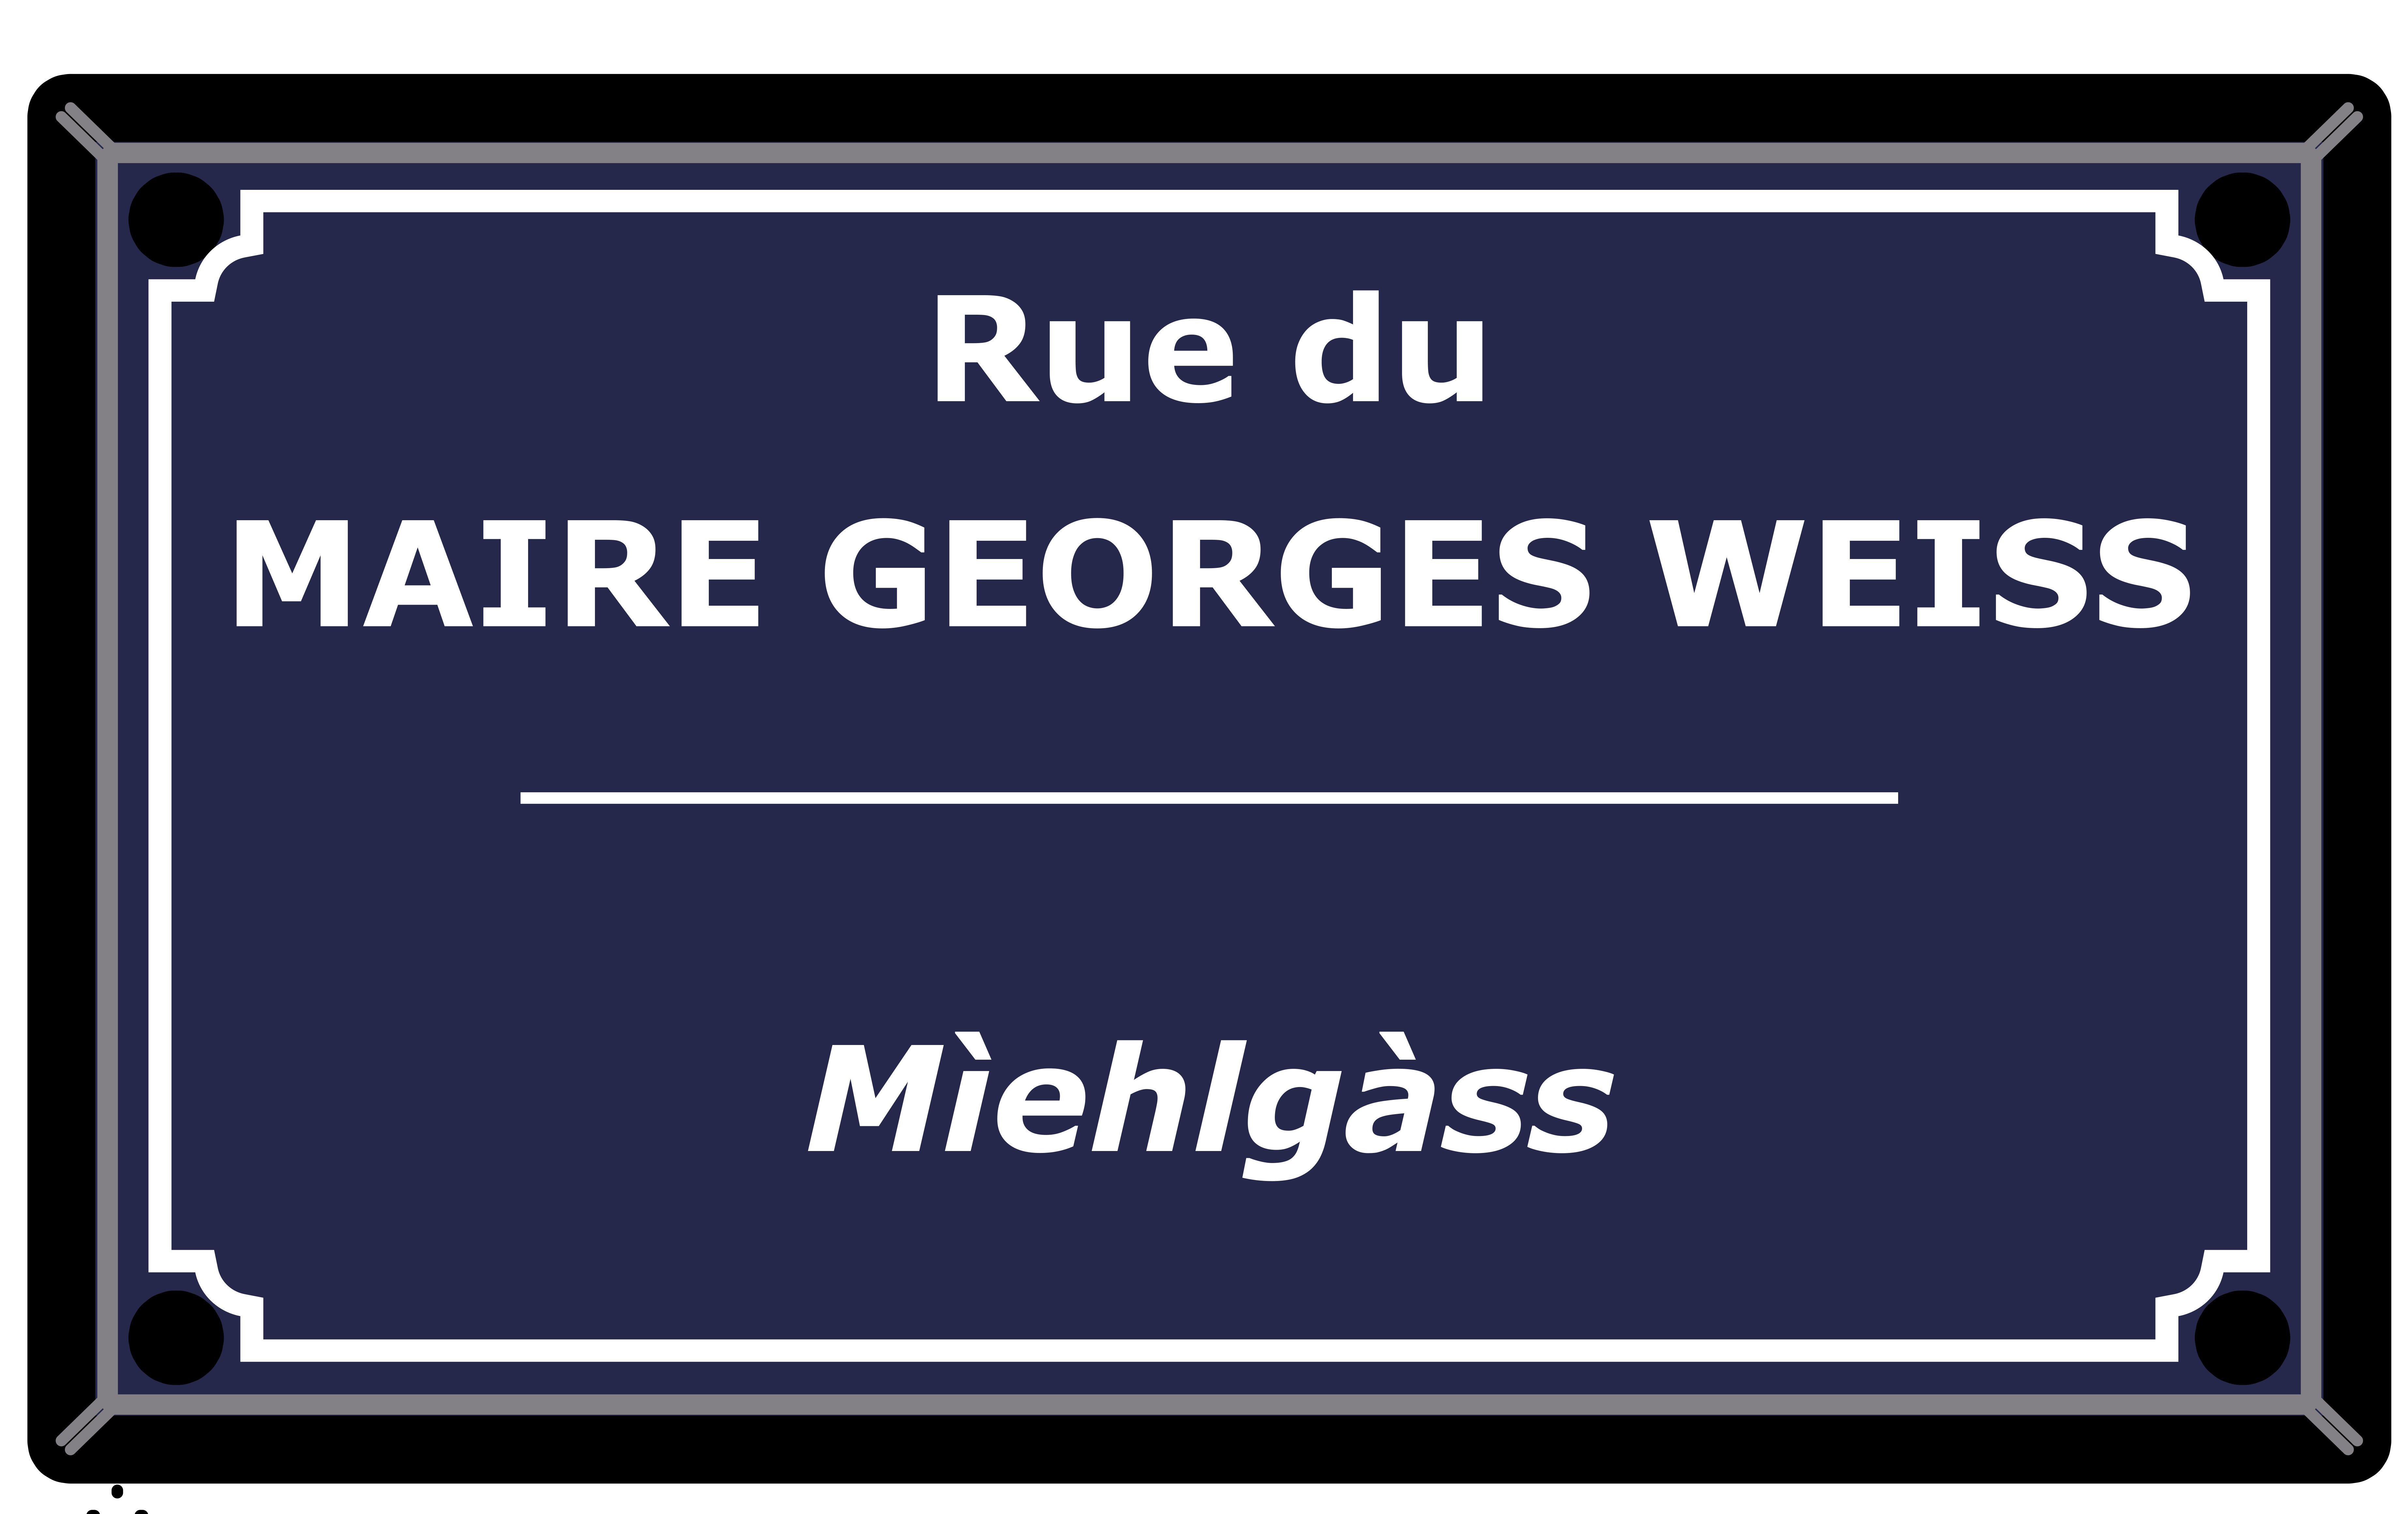 Rue Maire Georges Weiss